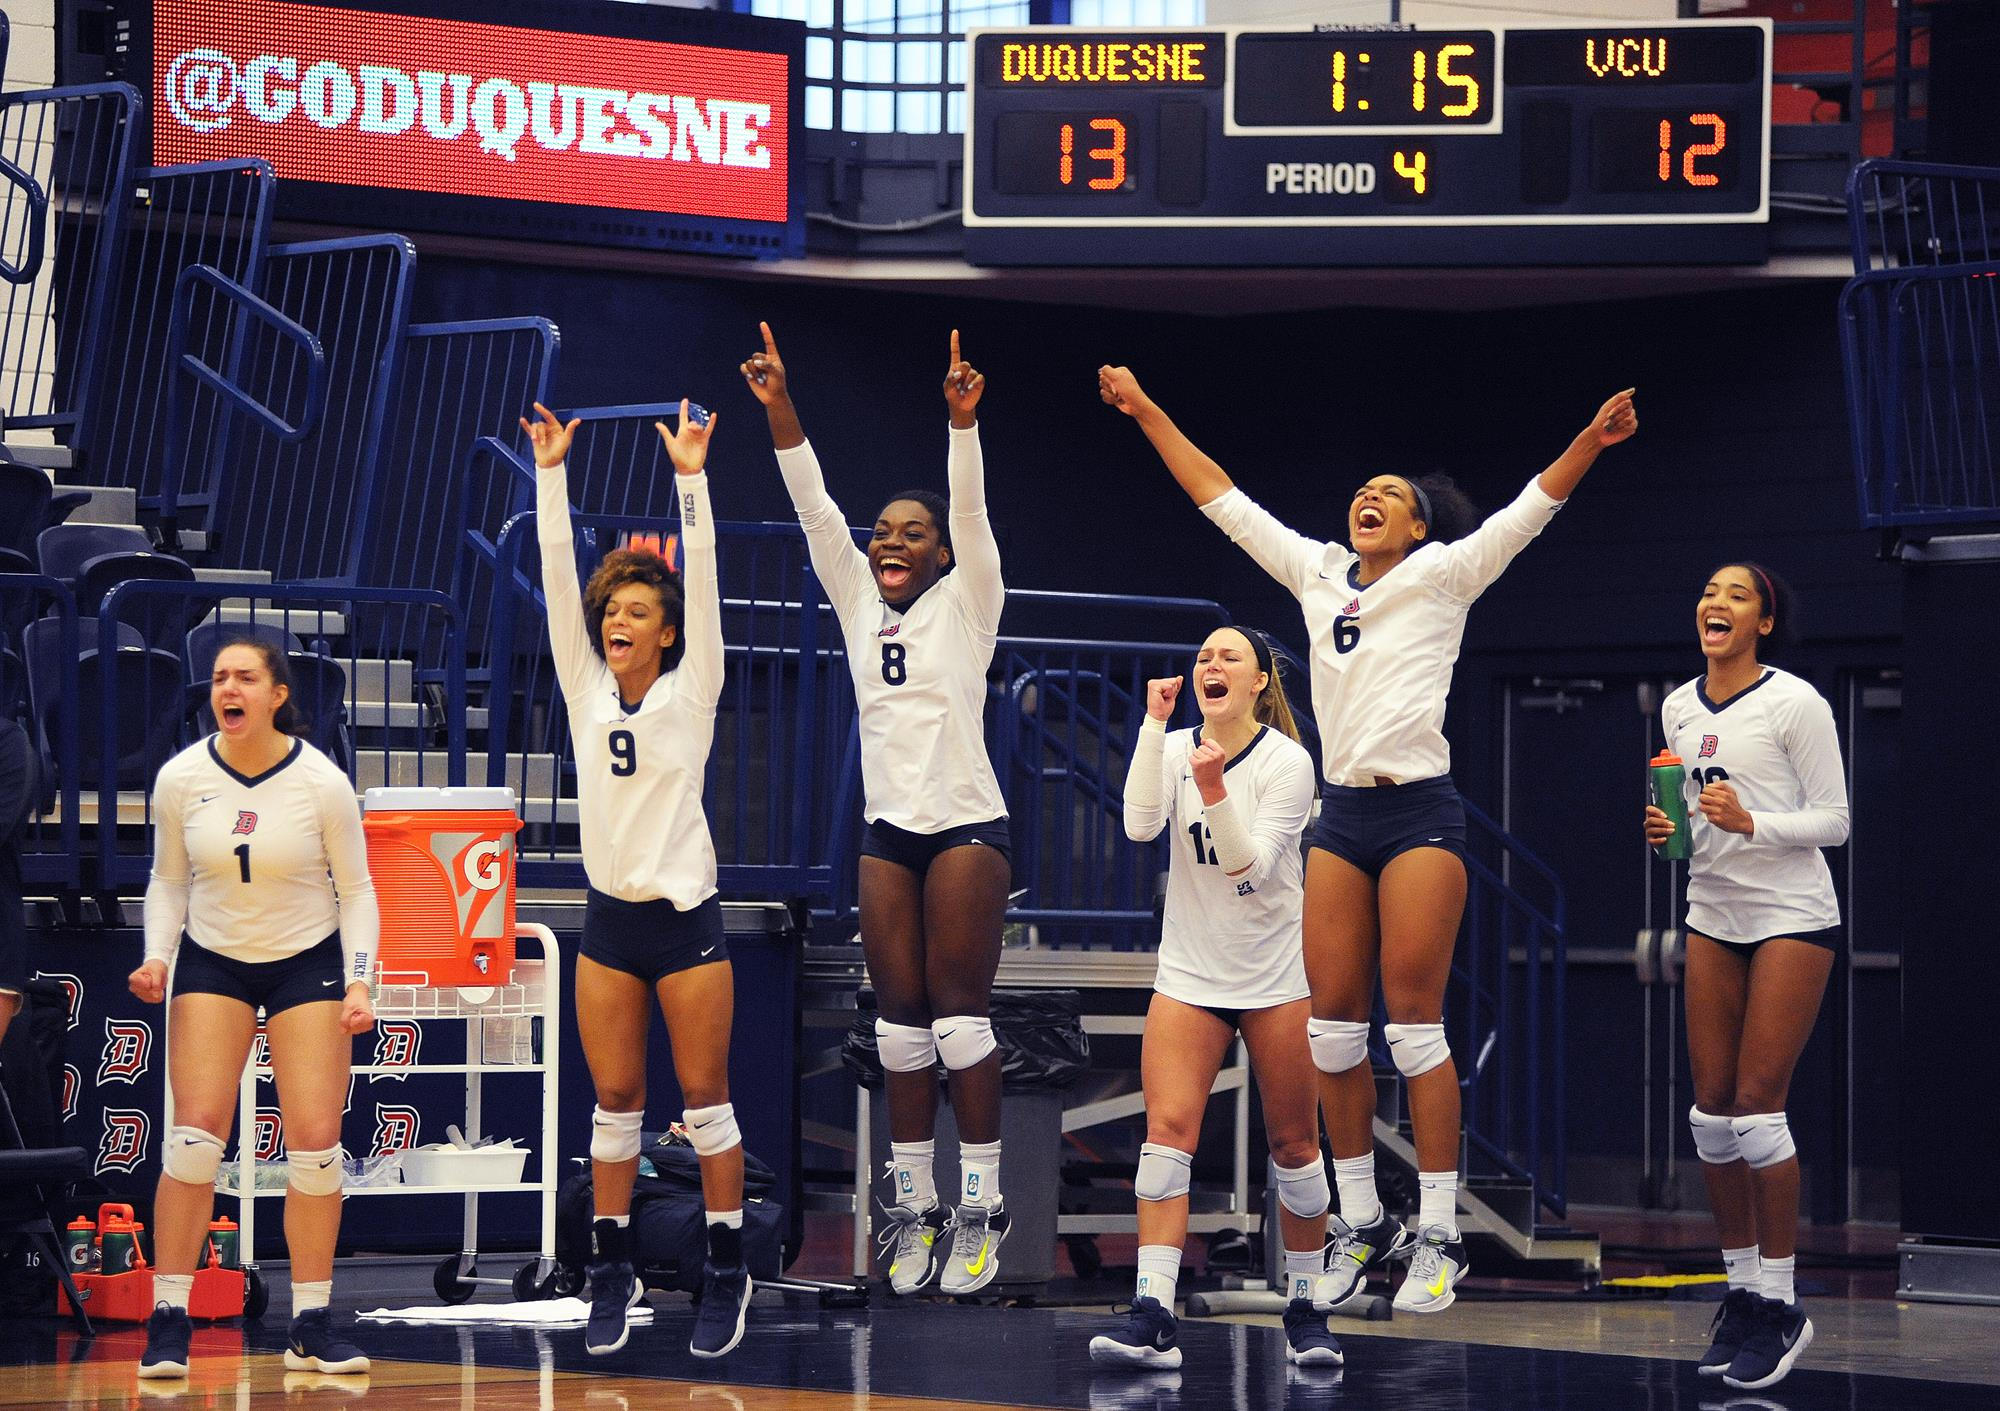 sports_volleyball_duquesneathletics